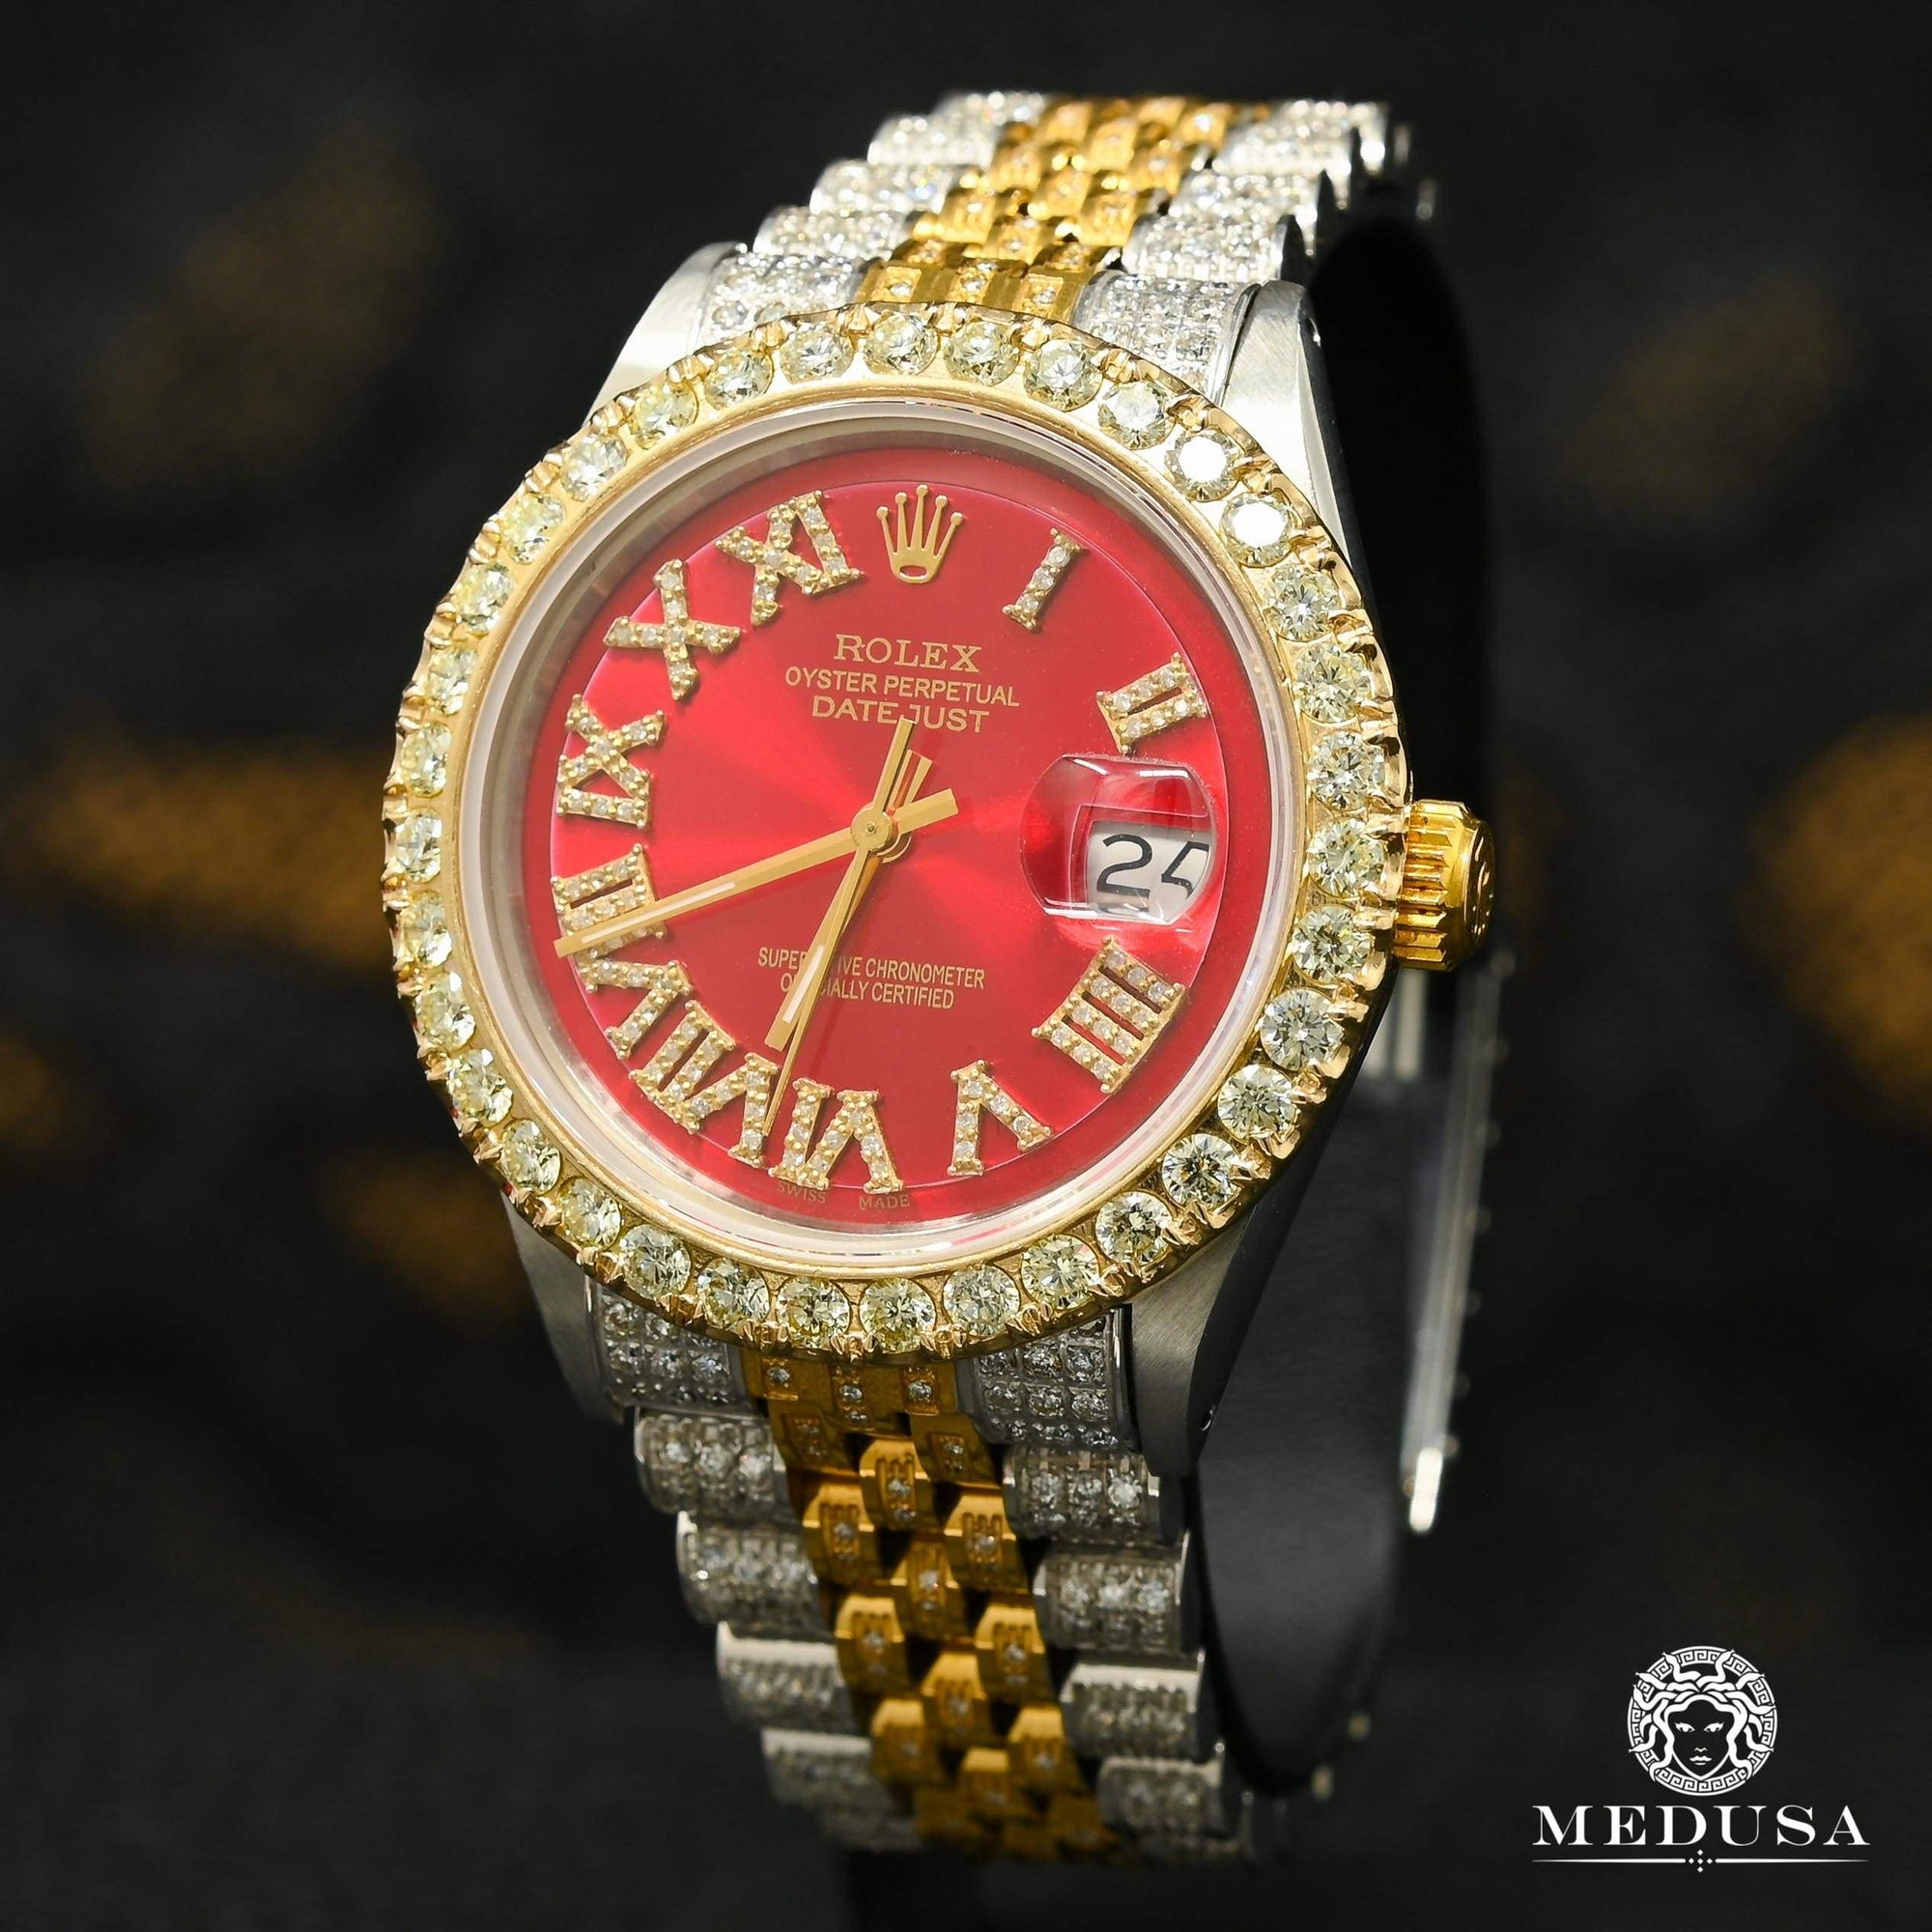 Rolex Datejust 36mm - Rouge Jubilee Iced